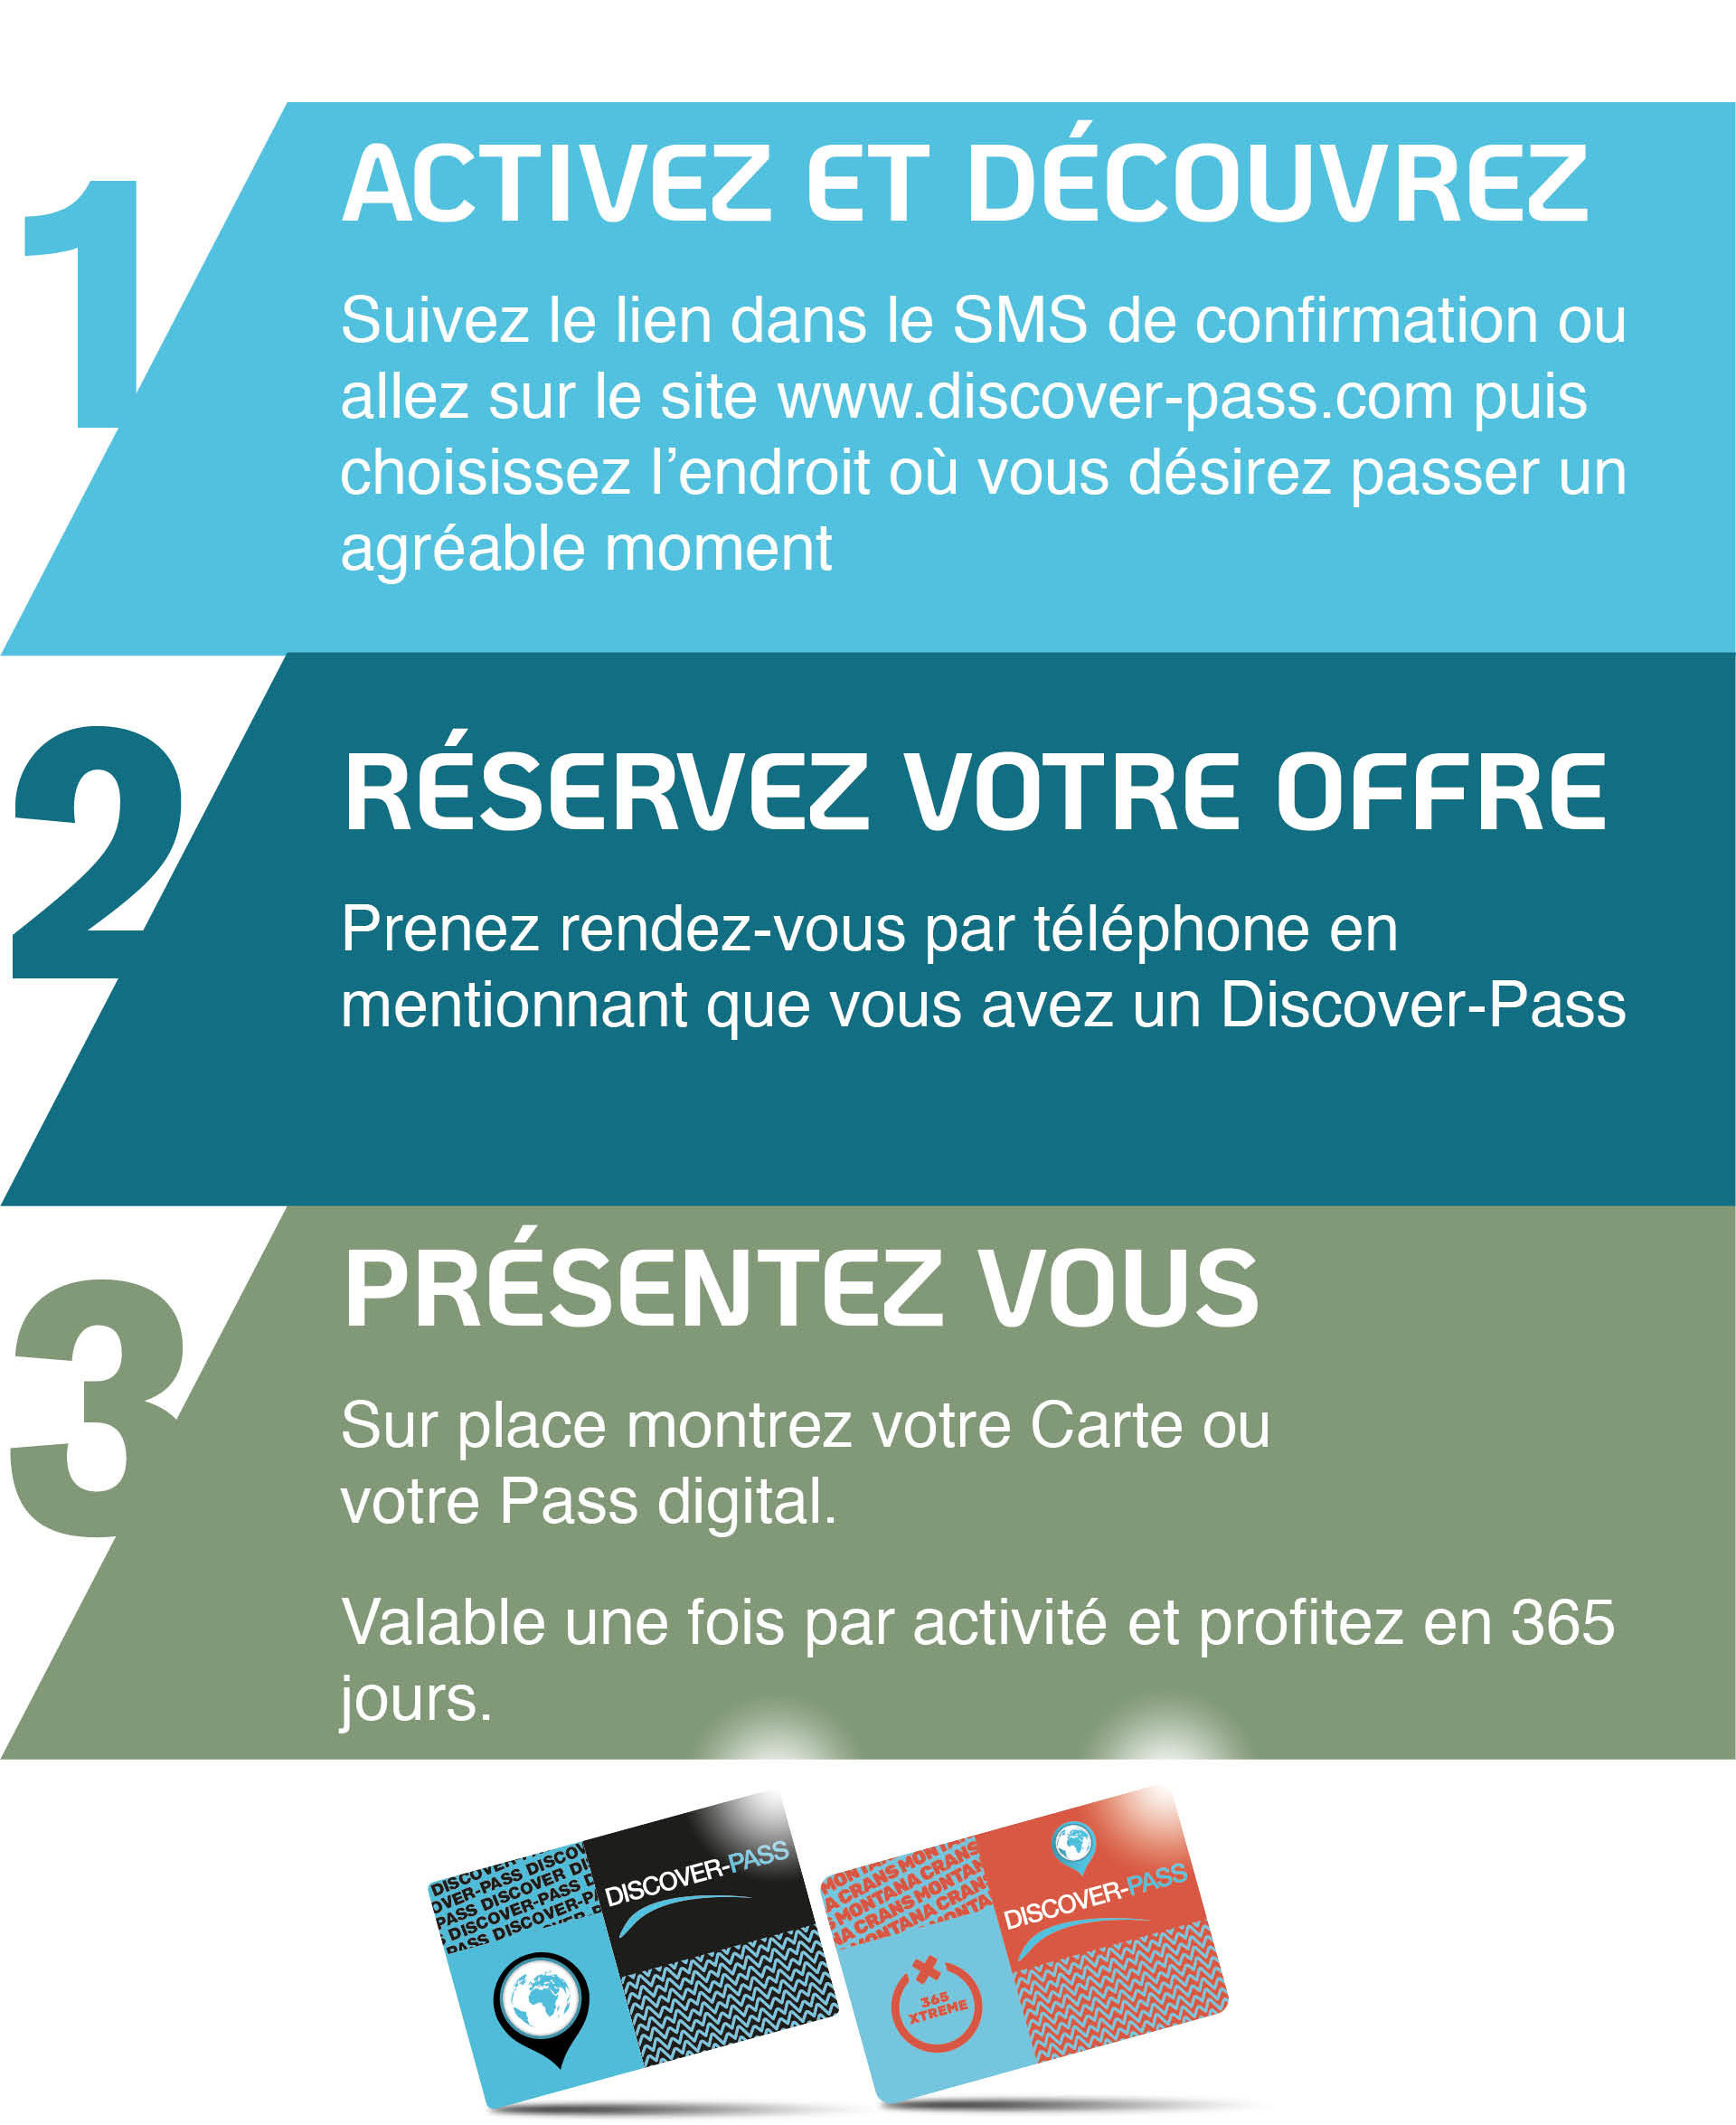 Discover-Pass